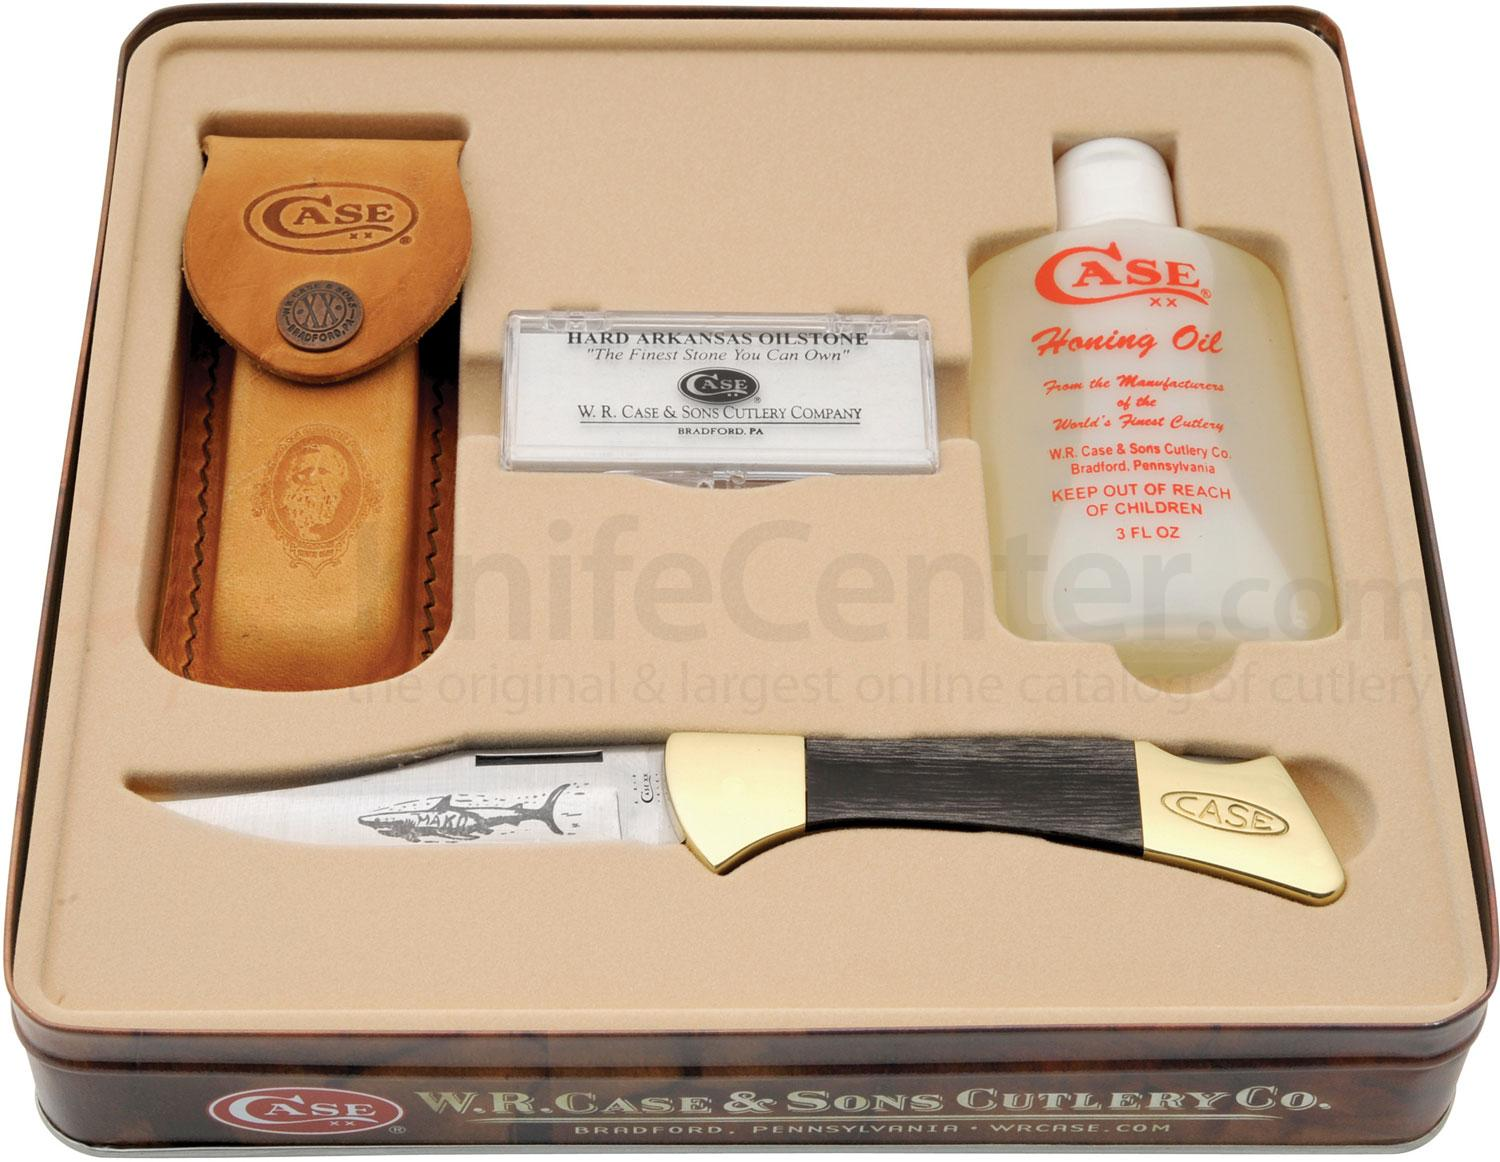 Case Black Synthetic Mako Gift Set 4-1/4 inch Closed (P158L SS) with Stone and Honing Oil